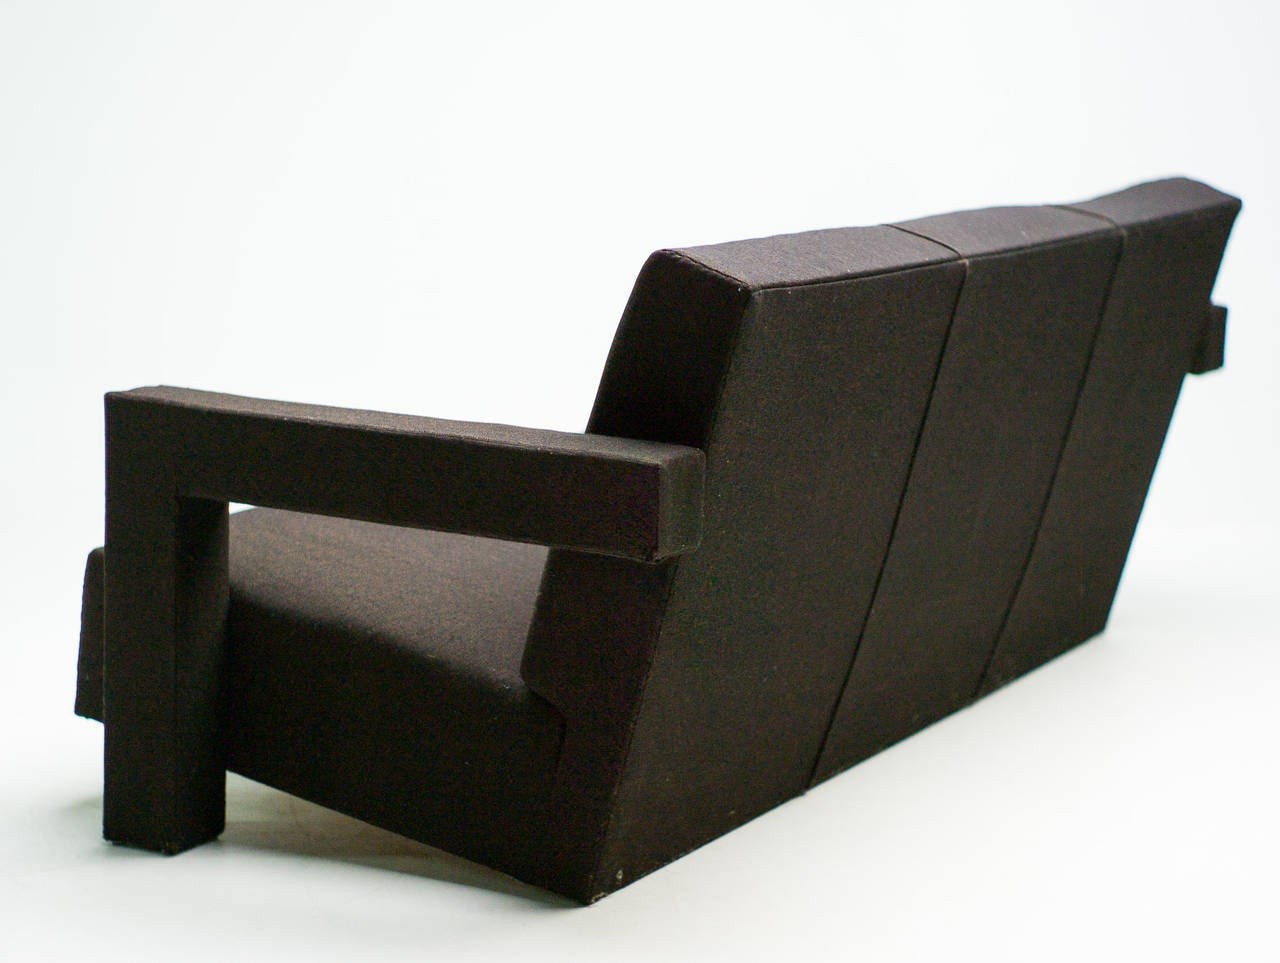 utrecht sofa by gerrit rietveld for metz and co for sale at 1stdibs. Black Bedroom Furniture Sets. Home Design Ideas